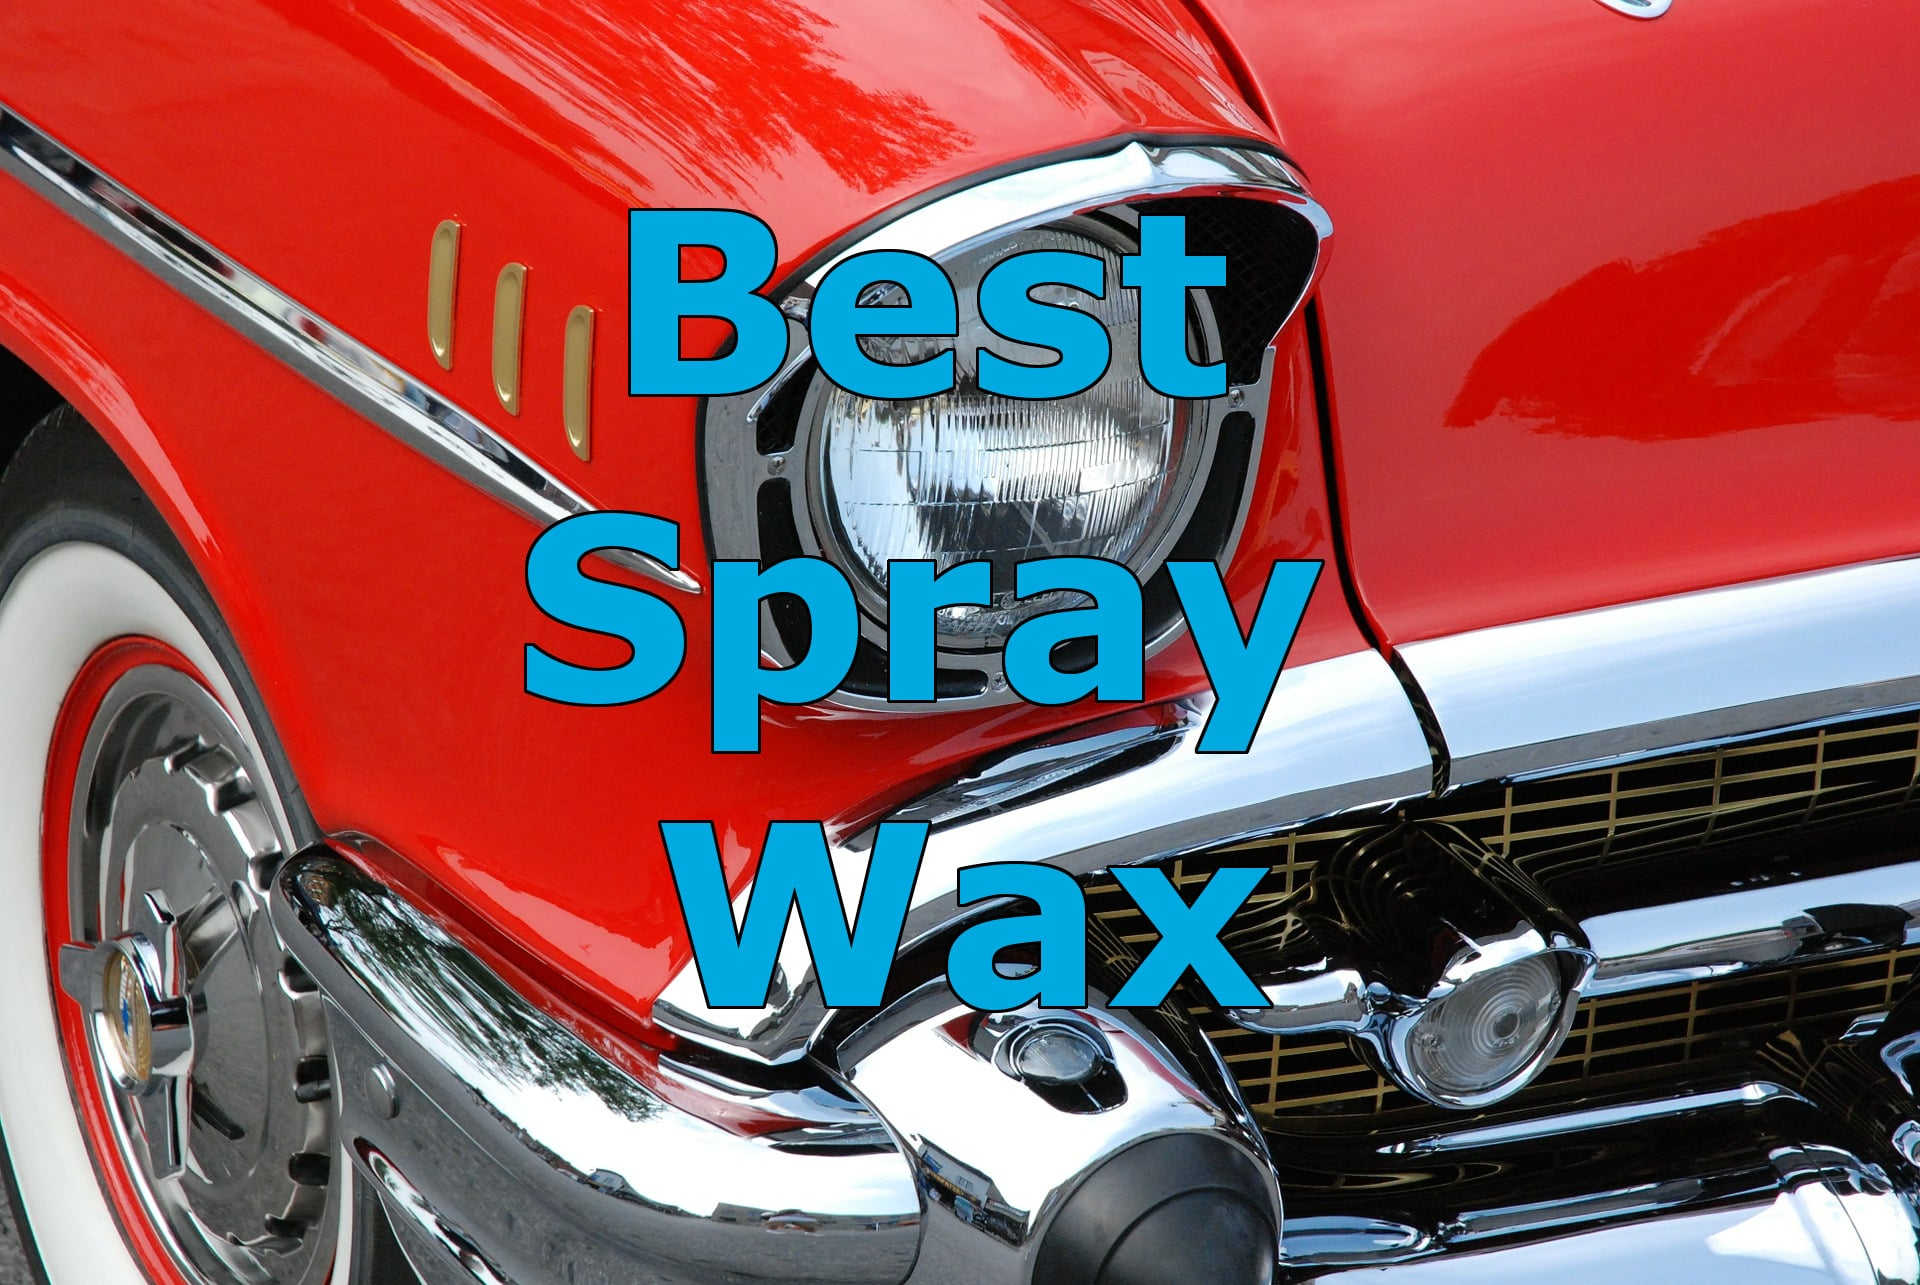 Best Spray Wax